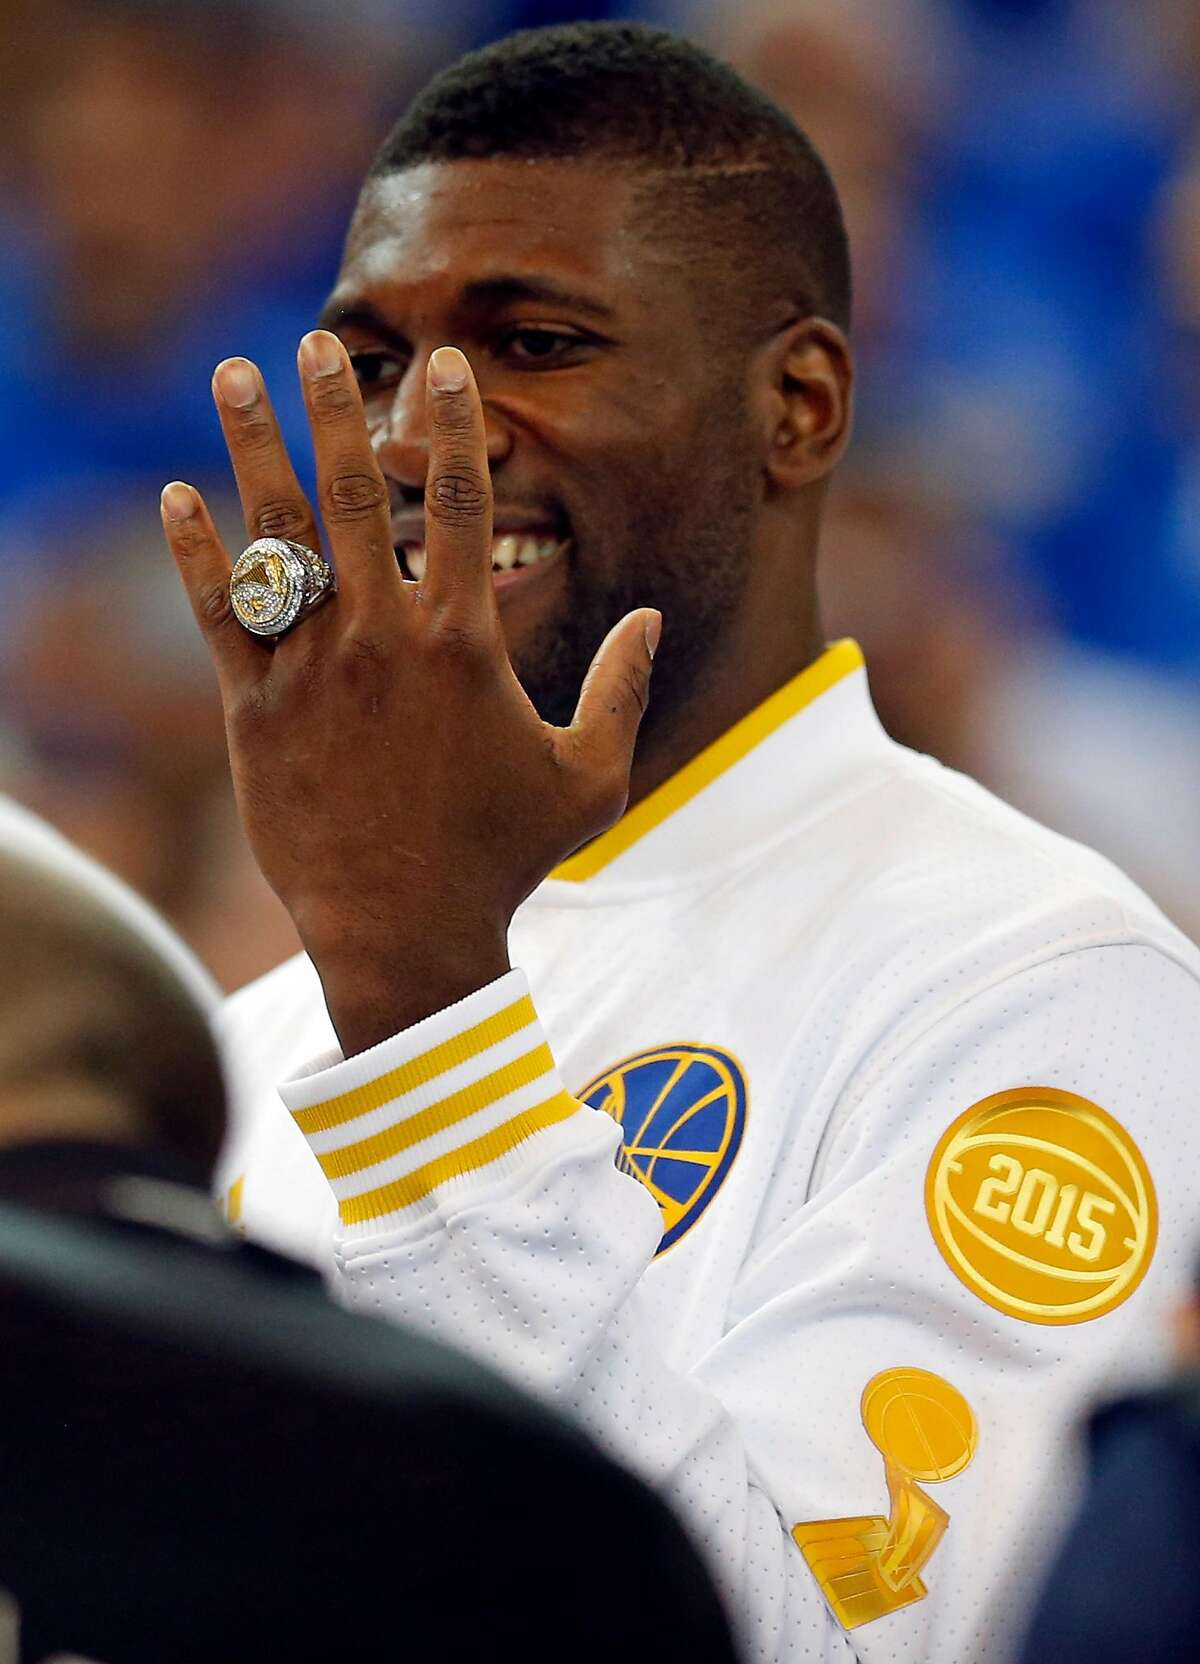 Festus Ezeli: Hasn't played in an NBA game since undergoing knee surgery in 2017 Like many of his Warriors teammates, Ezeli left the team in 2016 after the arrival of Kevin Durant. The center signed with the Portland Trail Blazers, but never played a game with them (or anyone else) after dealing with a series of knee procedures. Ezeli is still active on Twitter and often tweets during Warriors games.